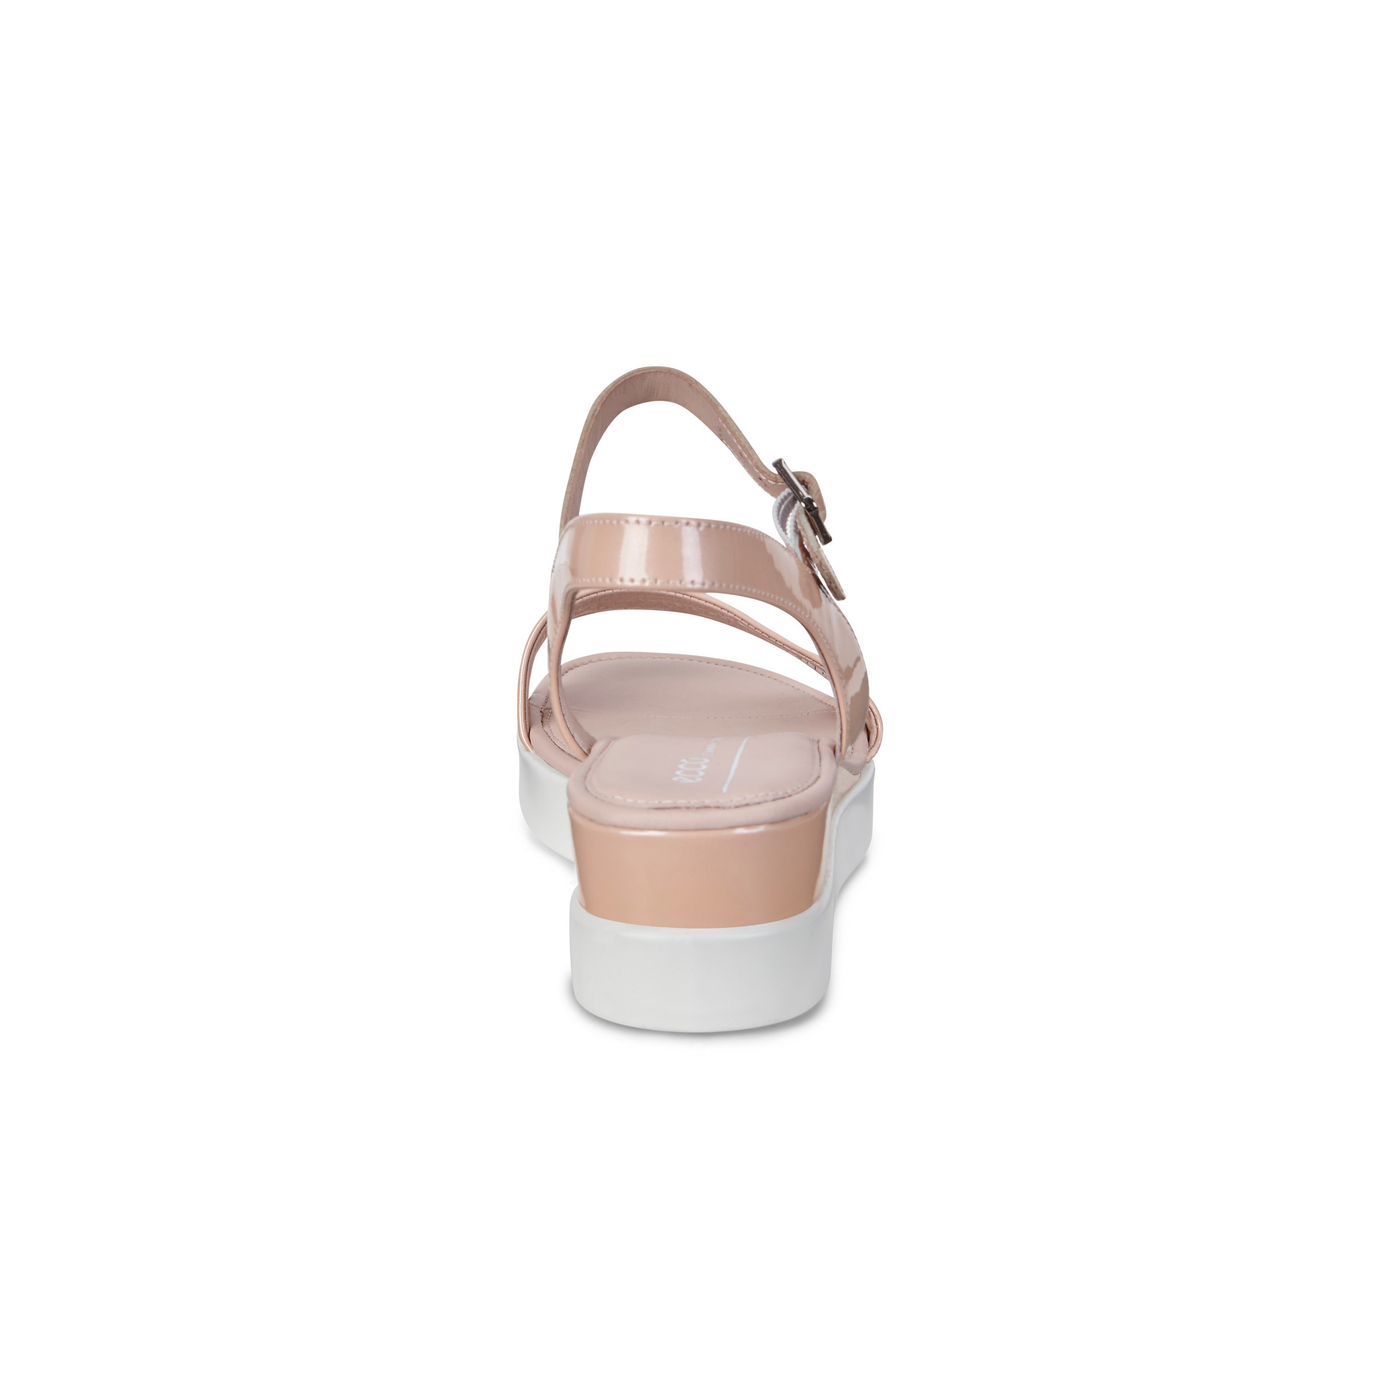 a76b84d93a36 ECCO Touch Women s Plateau Sandals